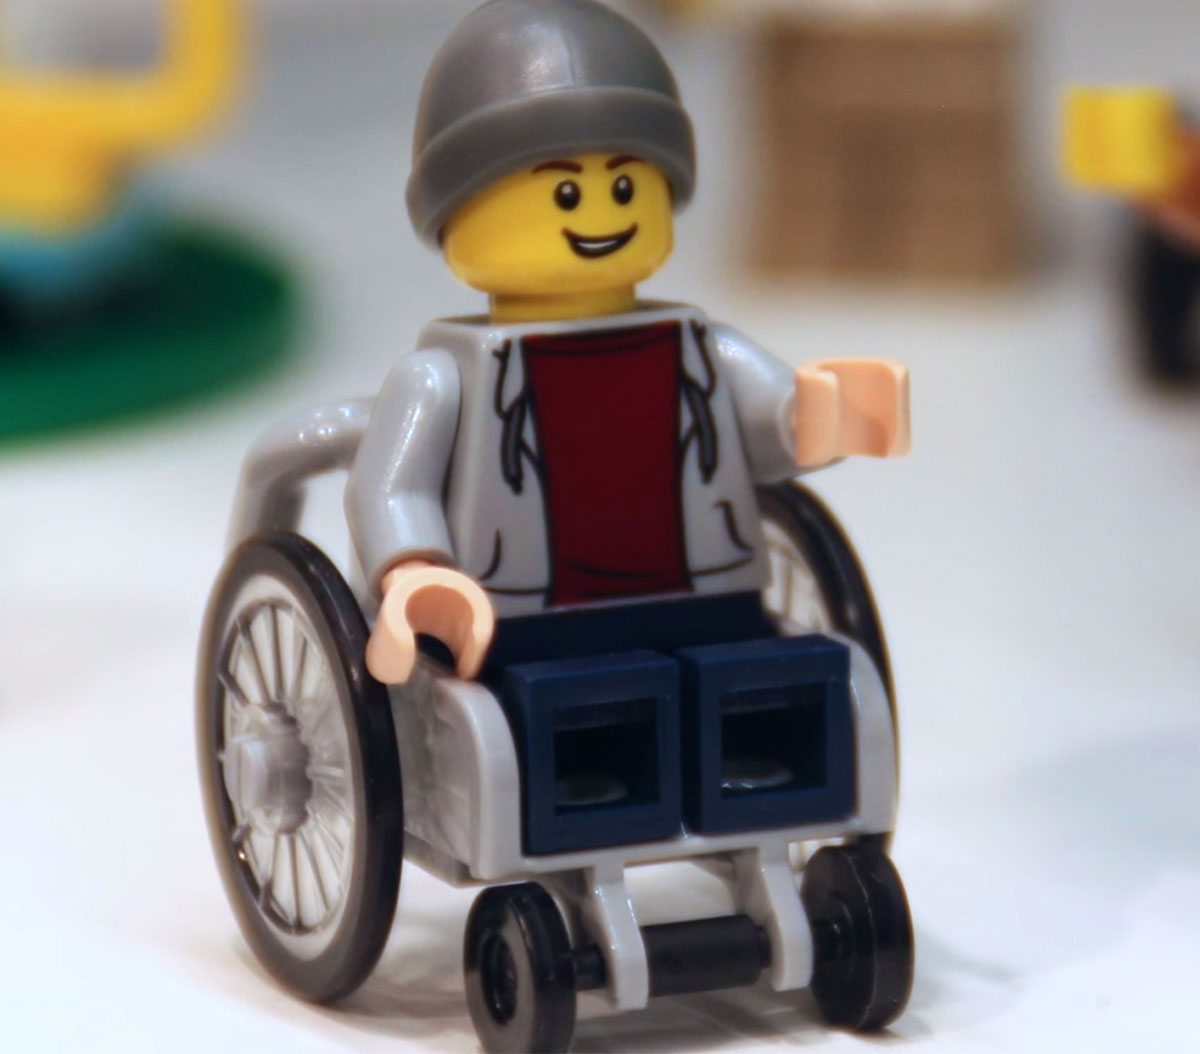 new Lego wheelchair minifigure